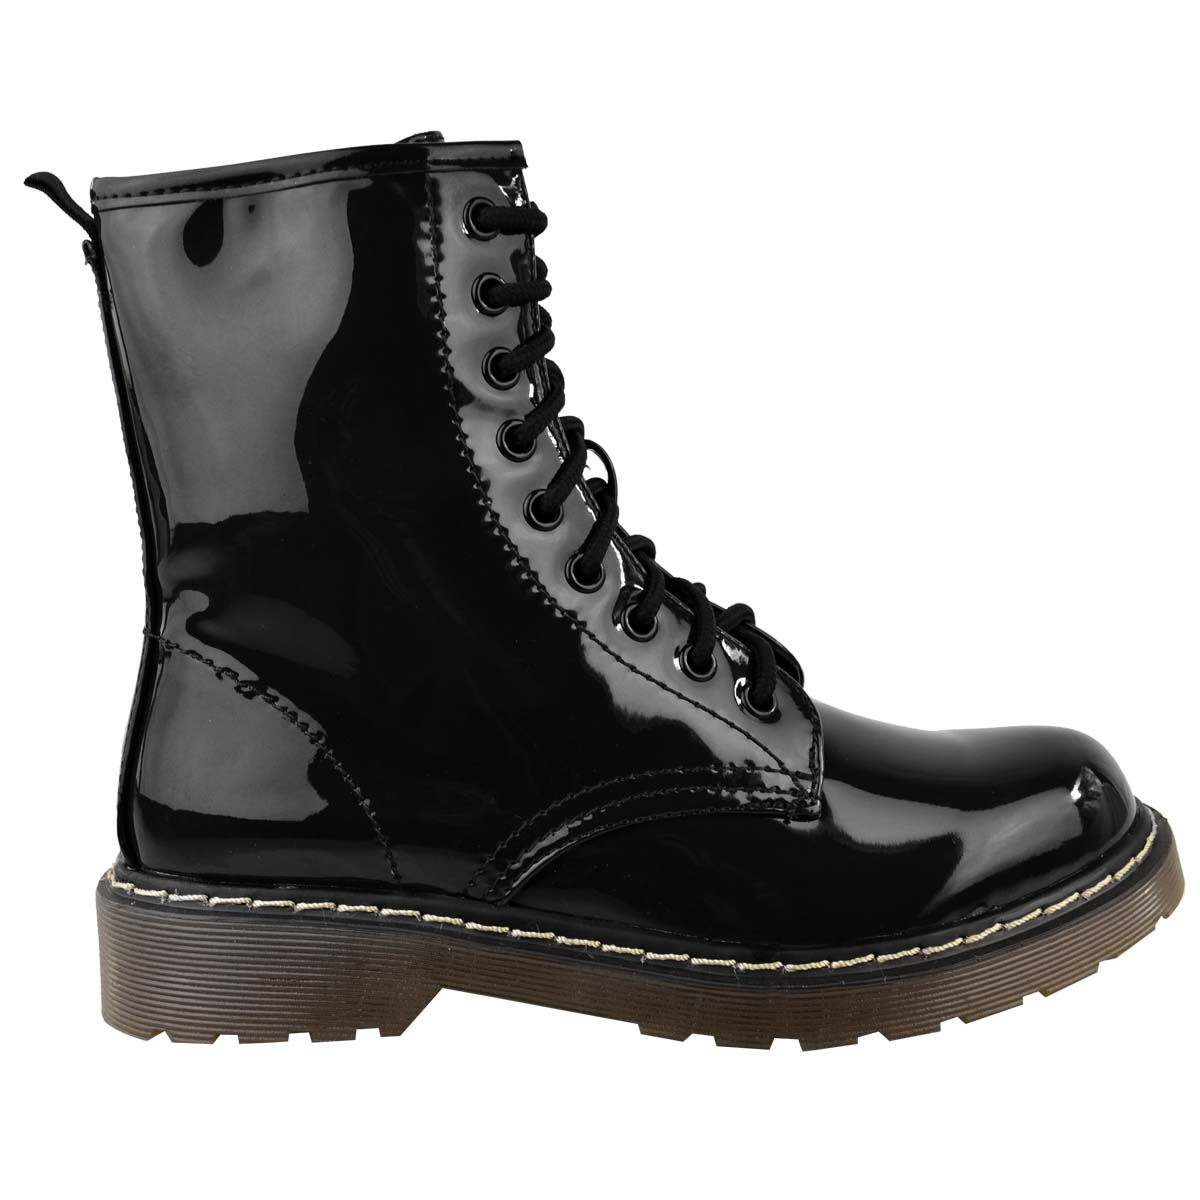 Womens-Doc-Ankle-Boots-Black-Faux-Leather-Patent-Lace-Up-Flat-Work-Army-Air-Goth thumbnail 4